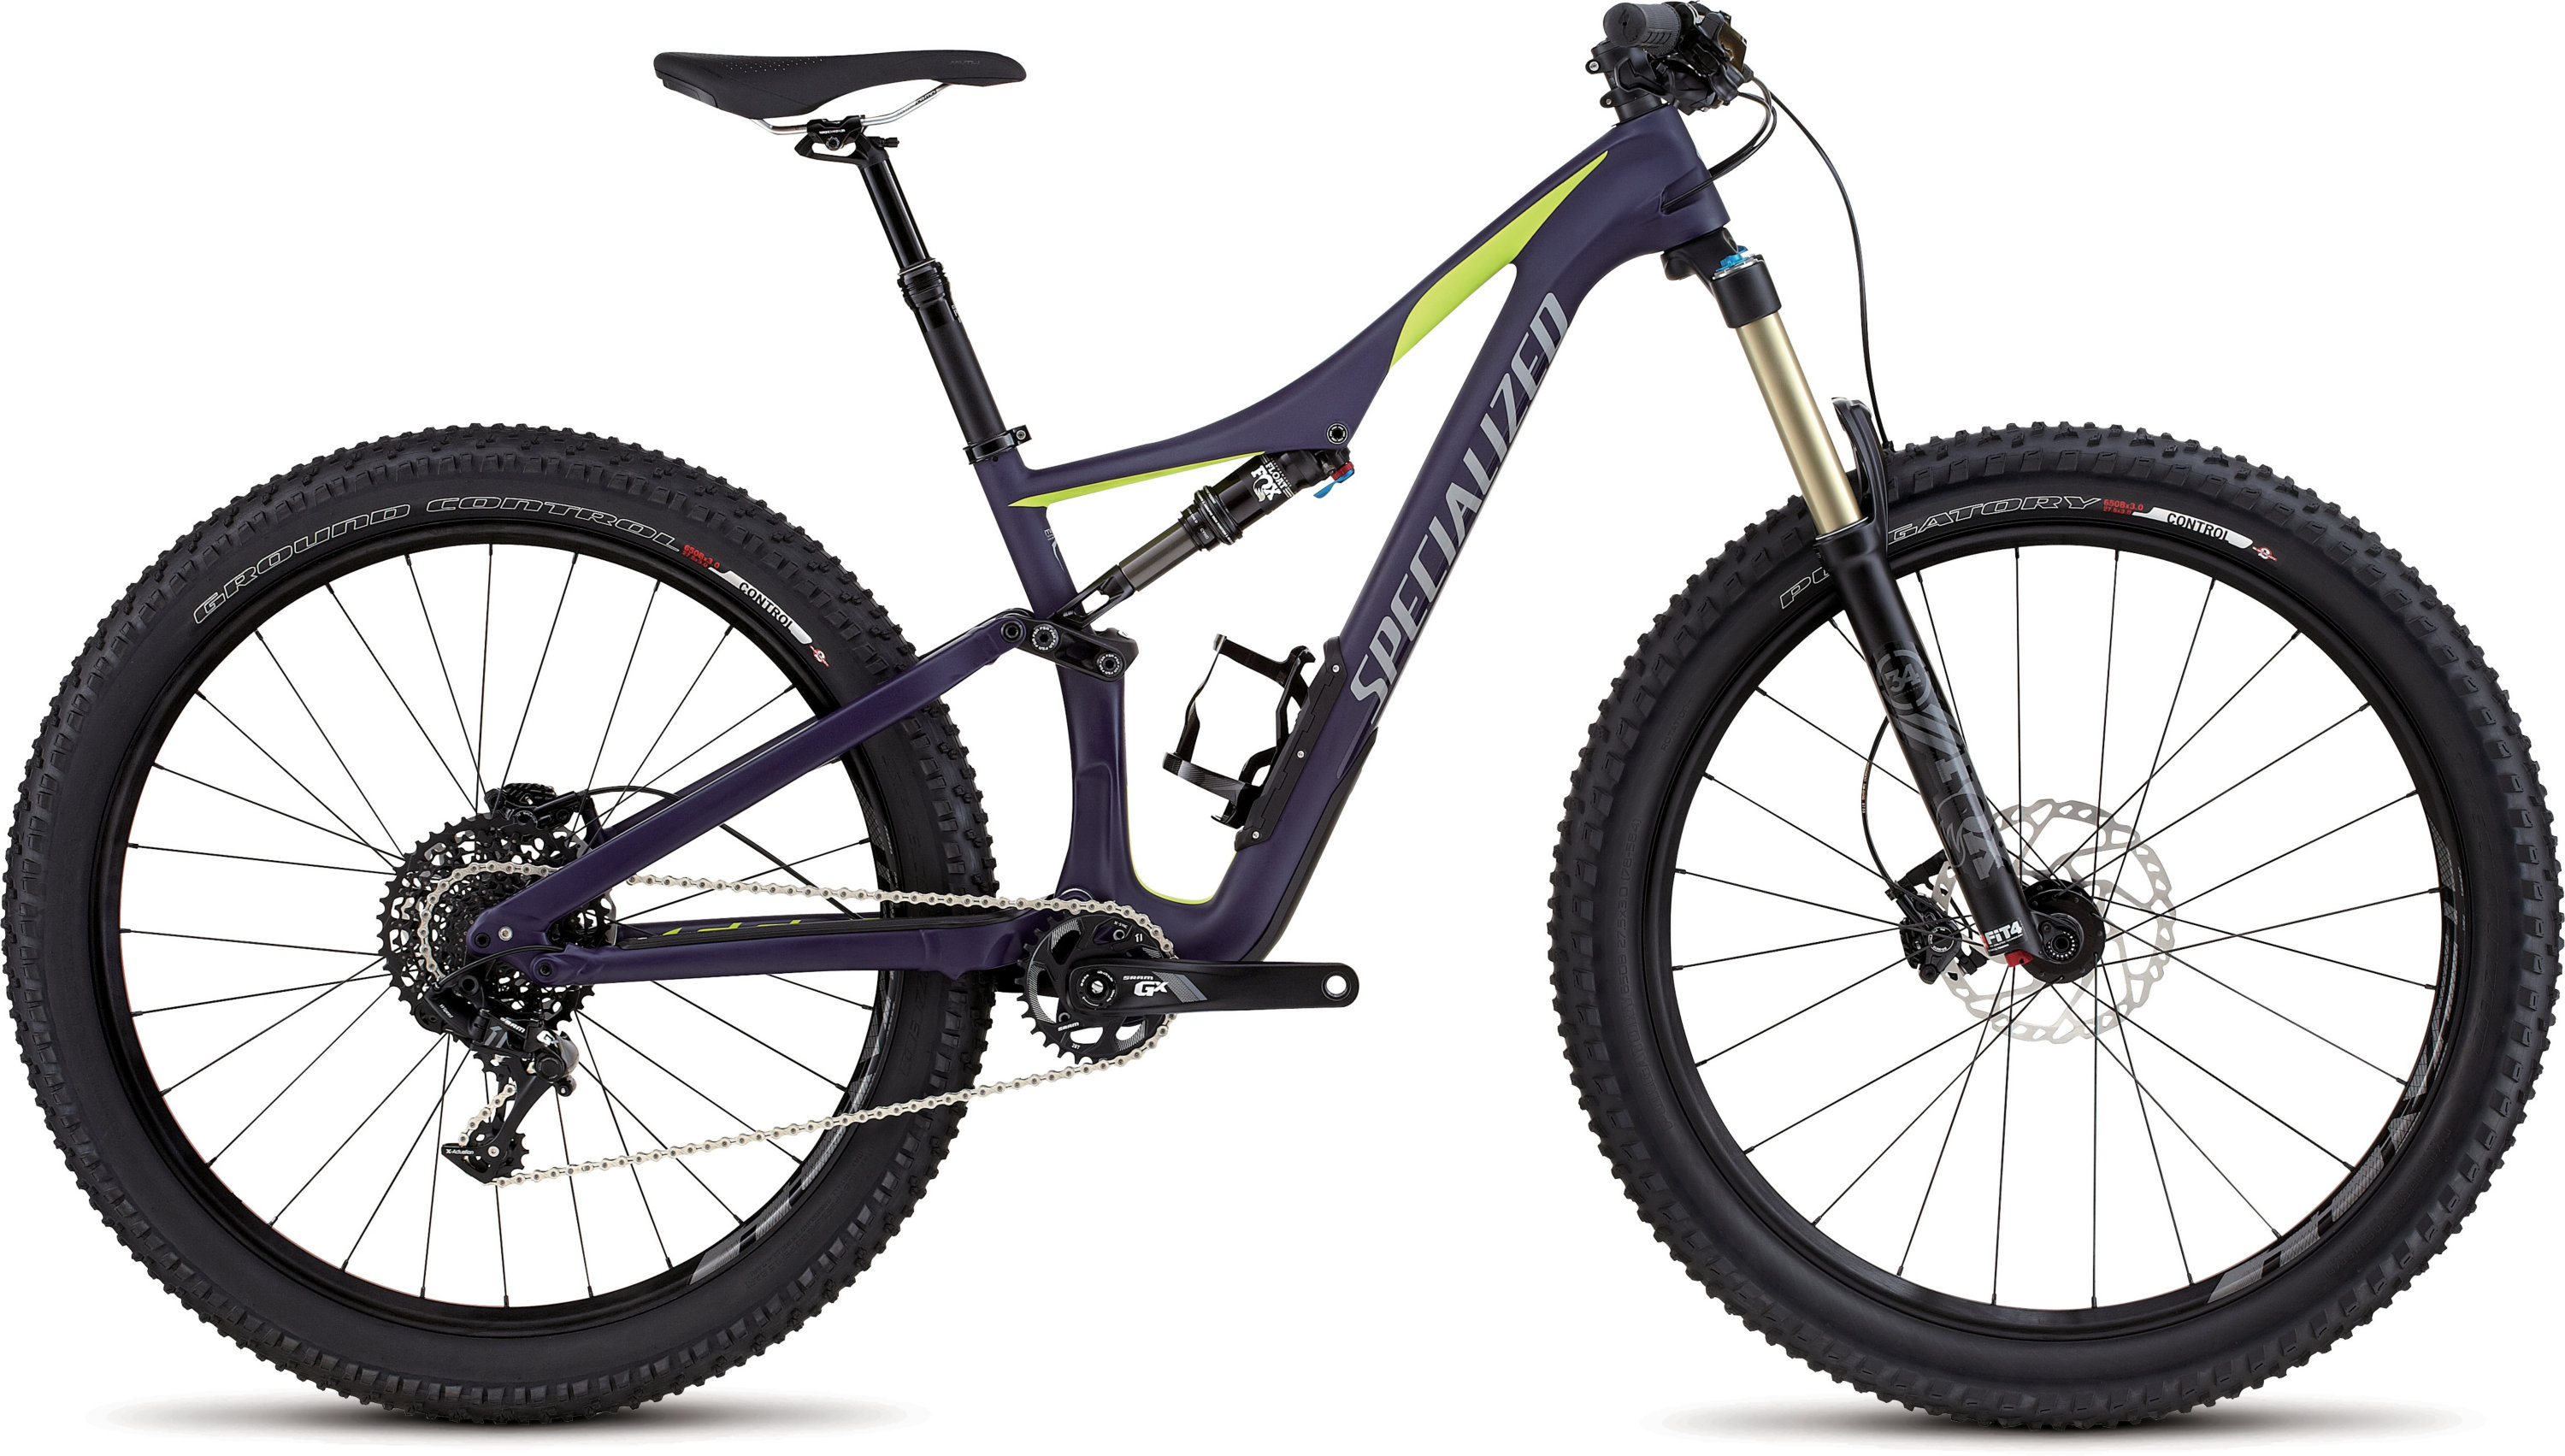 SPECIALIZED RHYME FSR COMP CARBON 6FATTIE DPNDGO/HYP/CLGRY M - schneider-sports